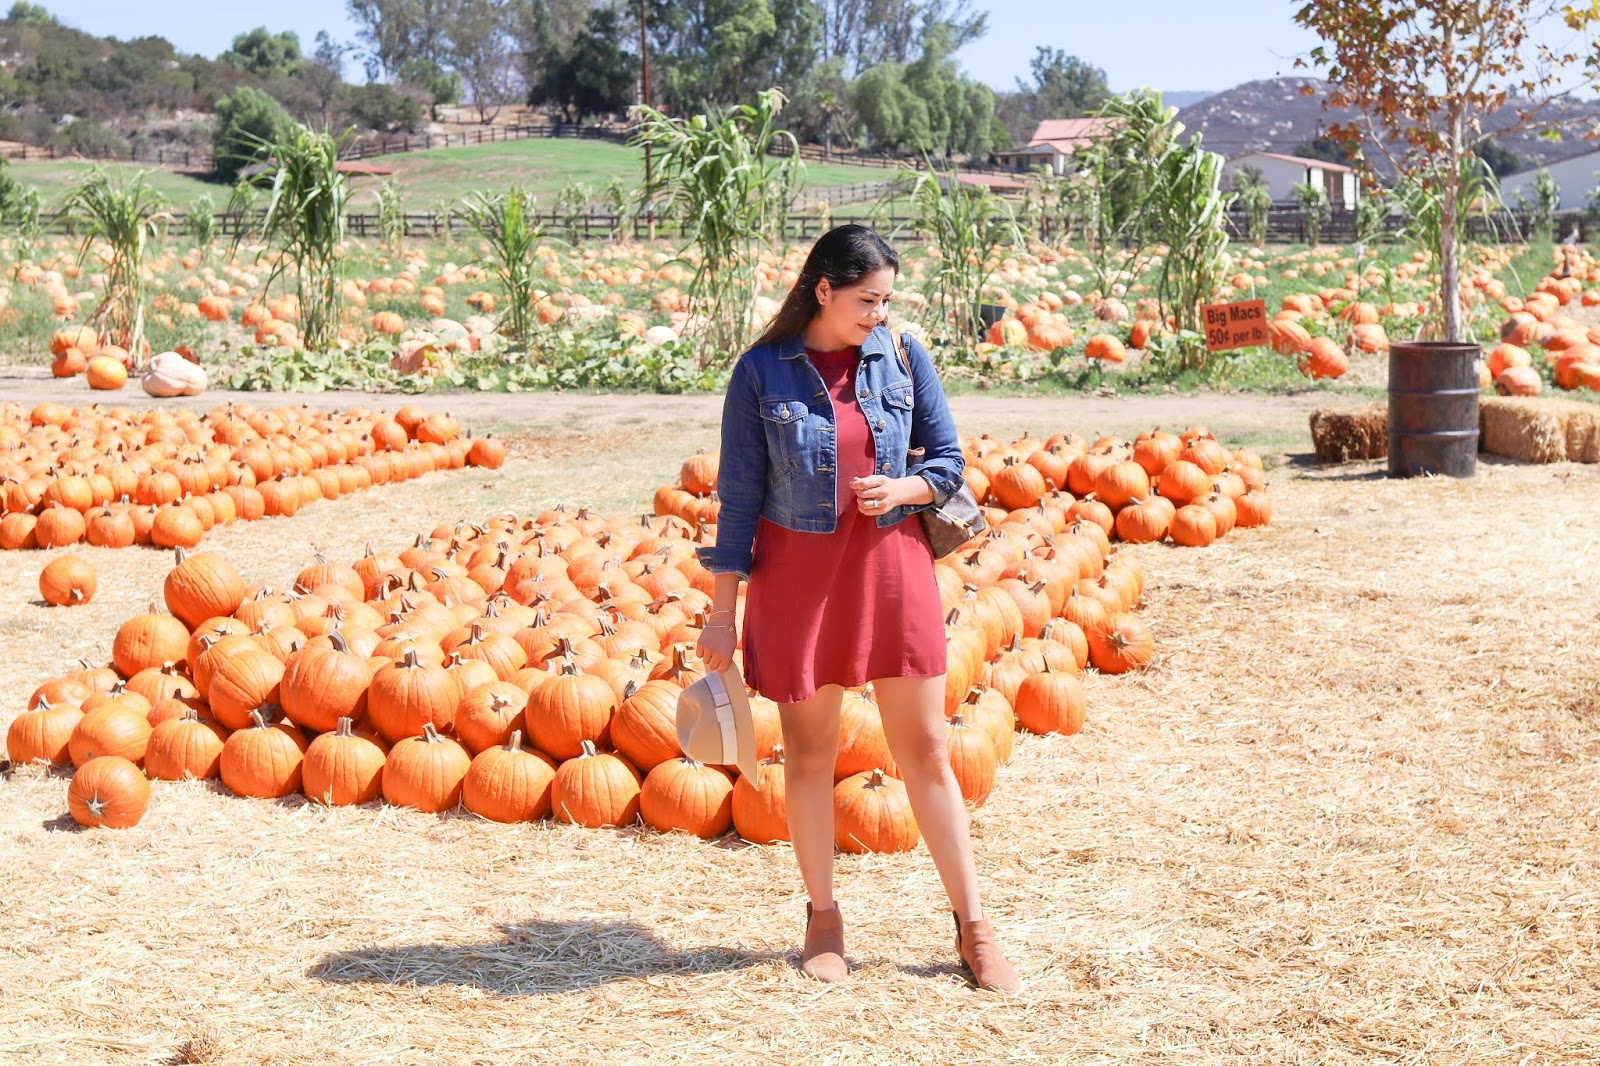 bates nut farm pumpkin patch, what i wore to the pumpkin patch